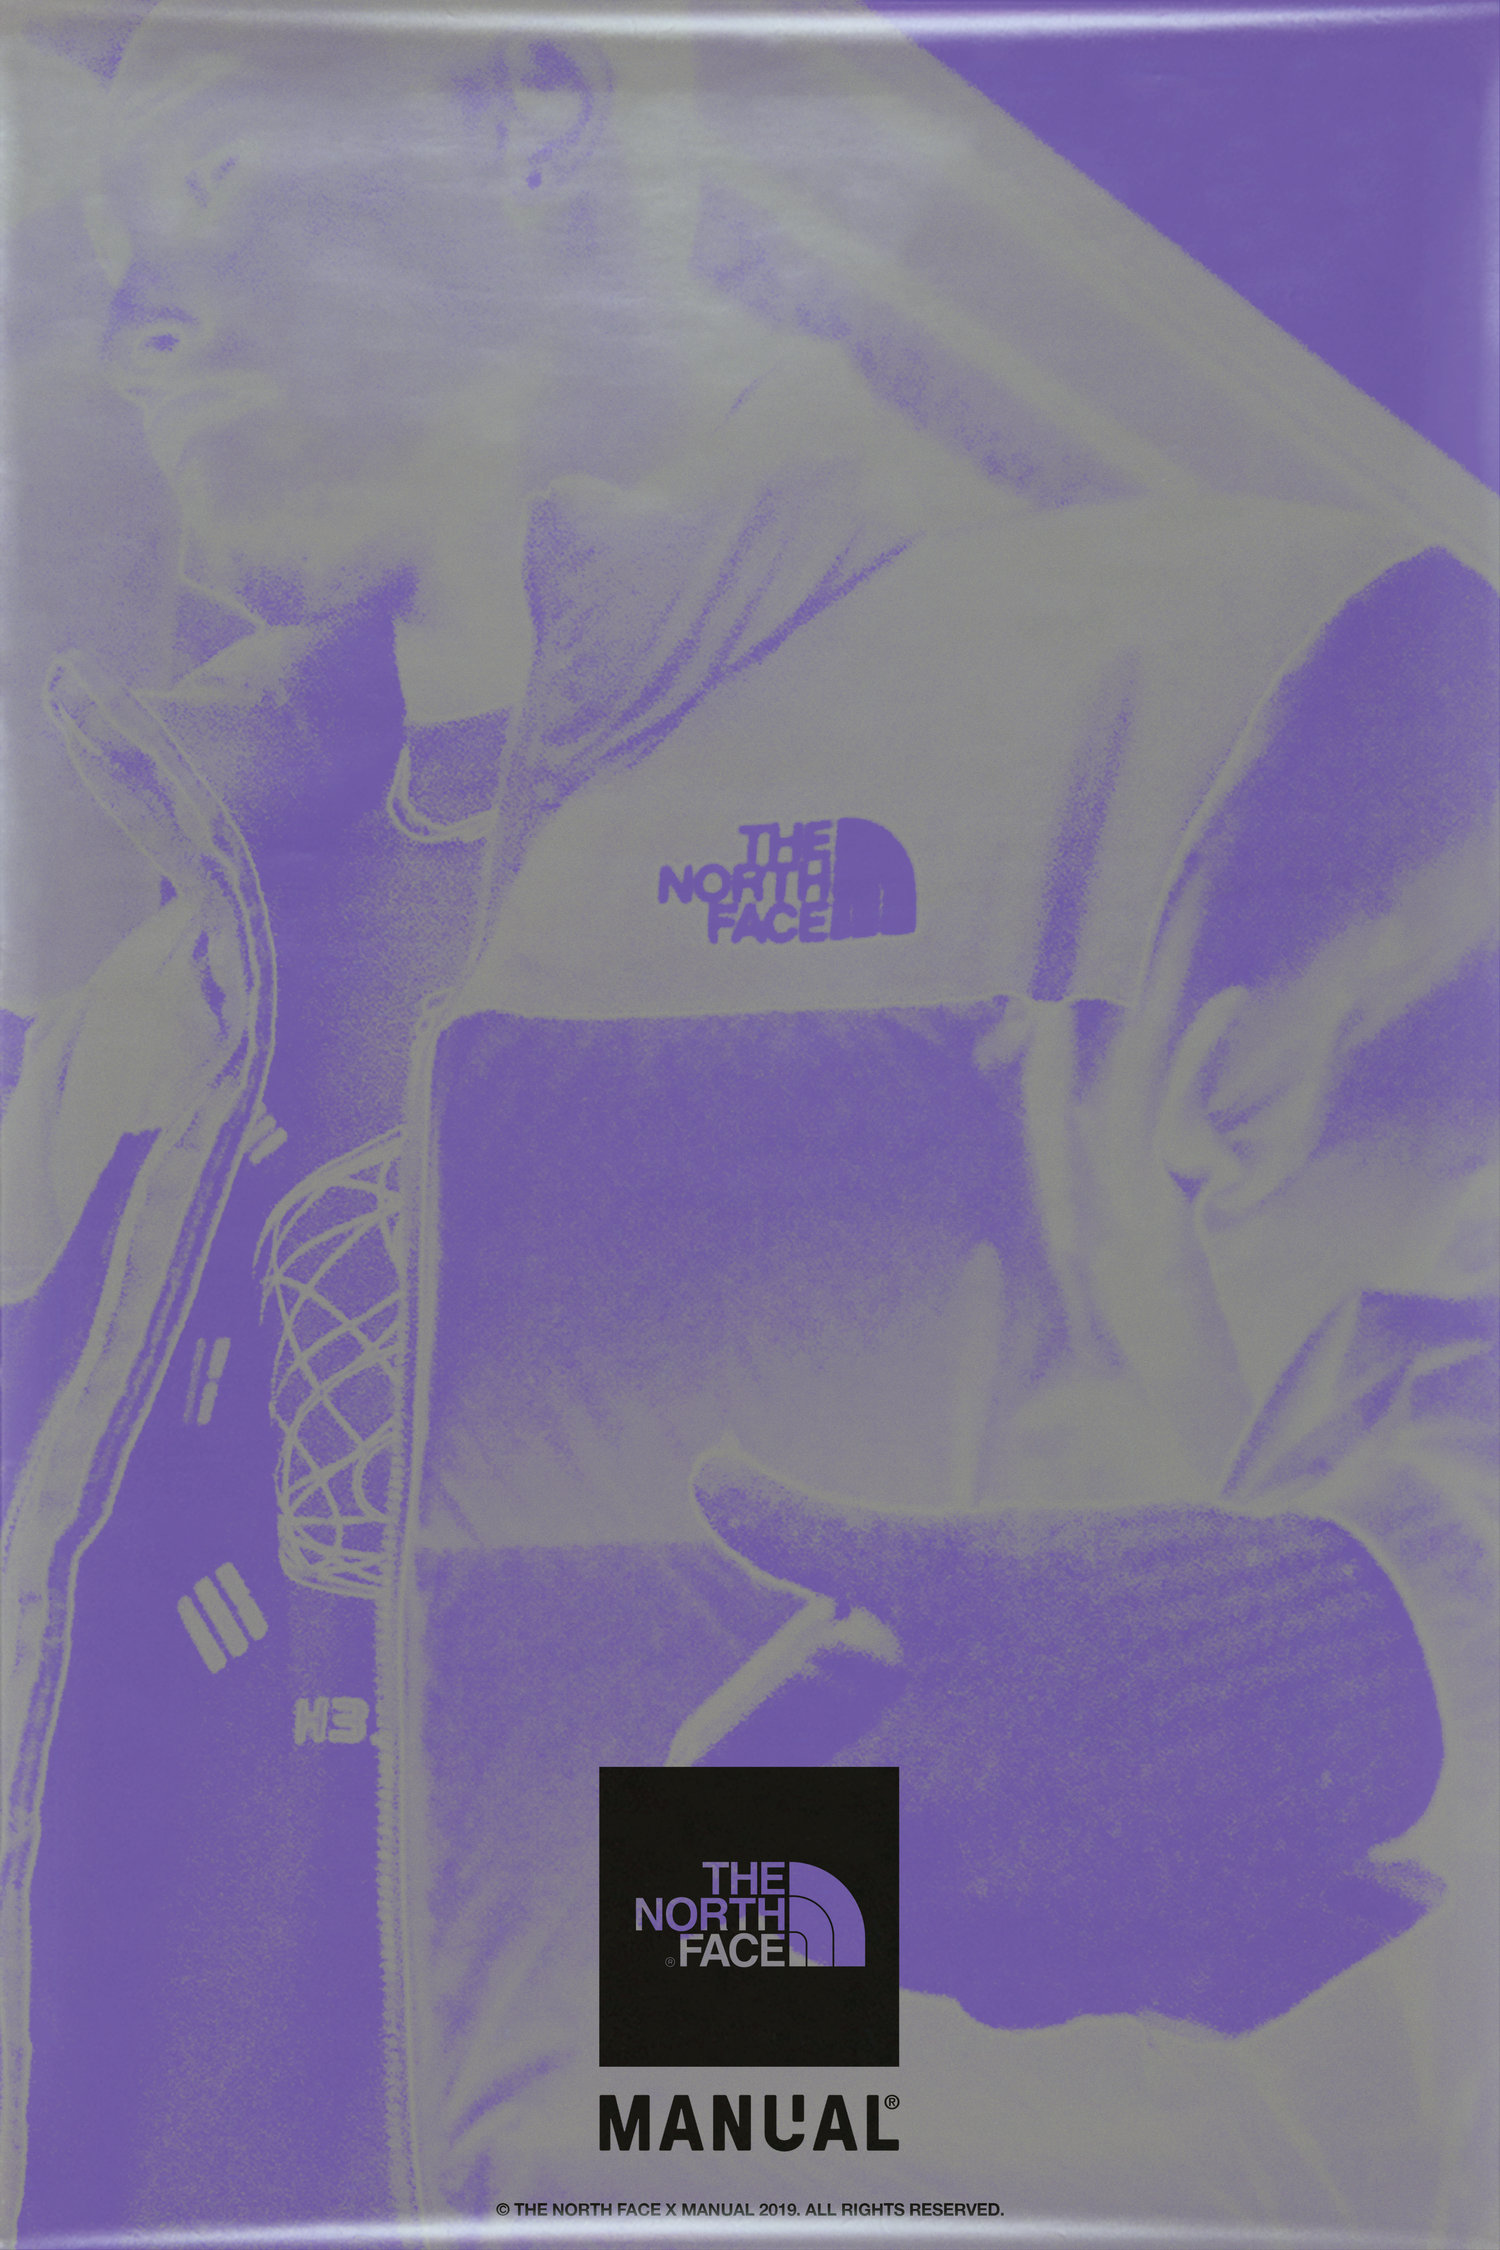 NORTH+FACE+POSTER+04+15+minimal+render+purple.jpg